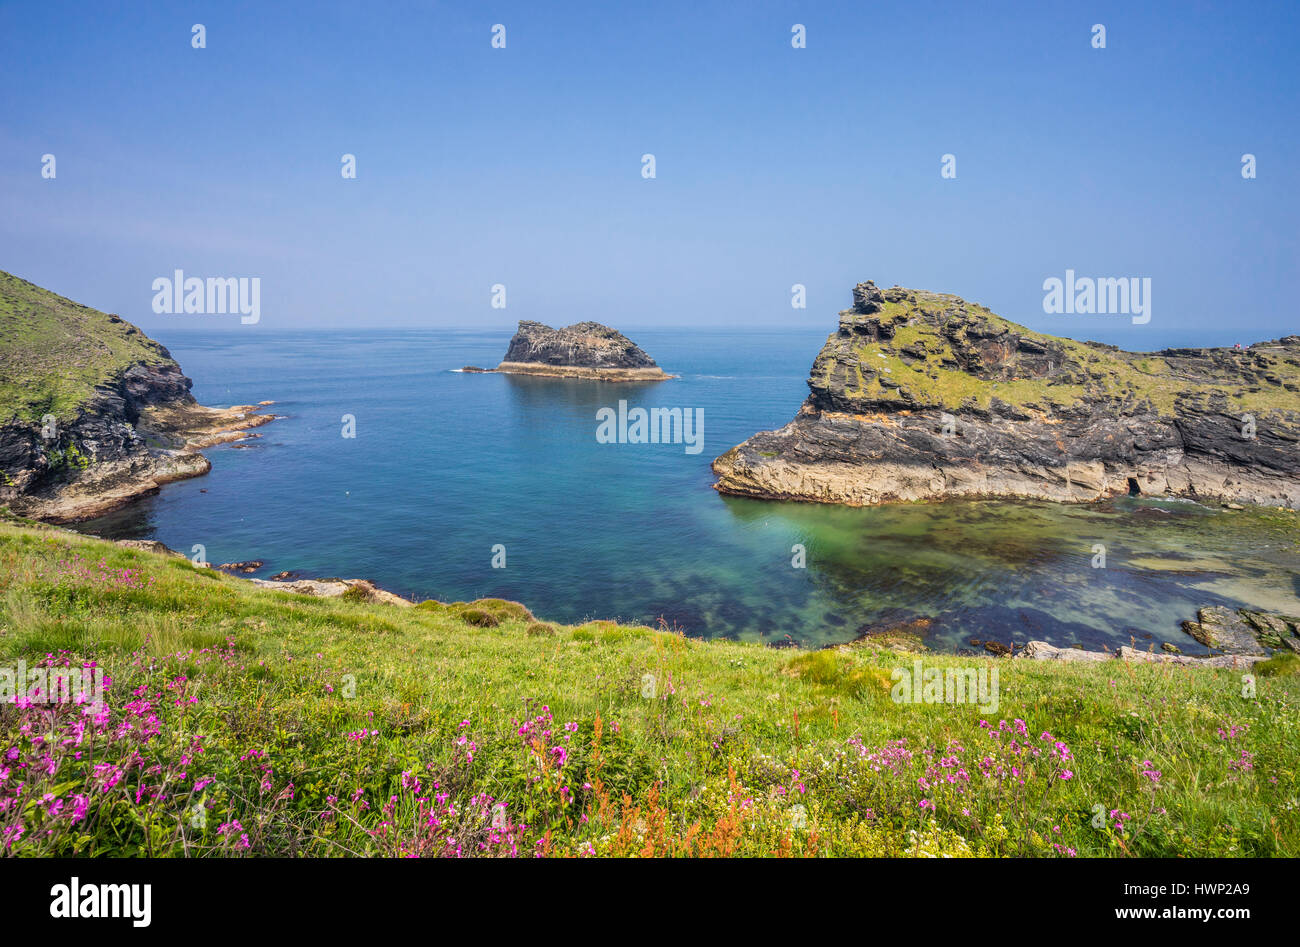 United Kingdom, South West England, Conwall, view of the entrance to Boscastle Harbour with Willapark promontory, - Stock Image